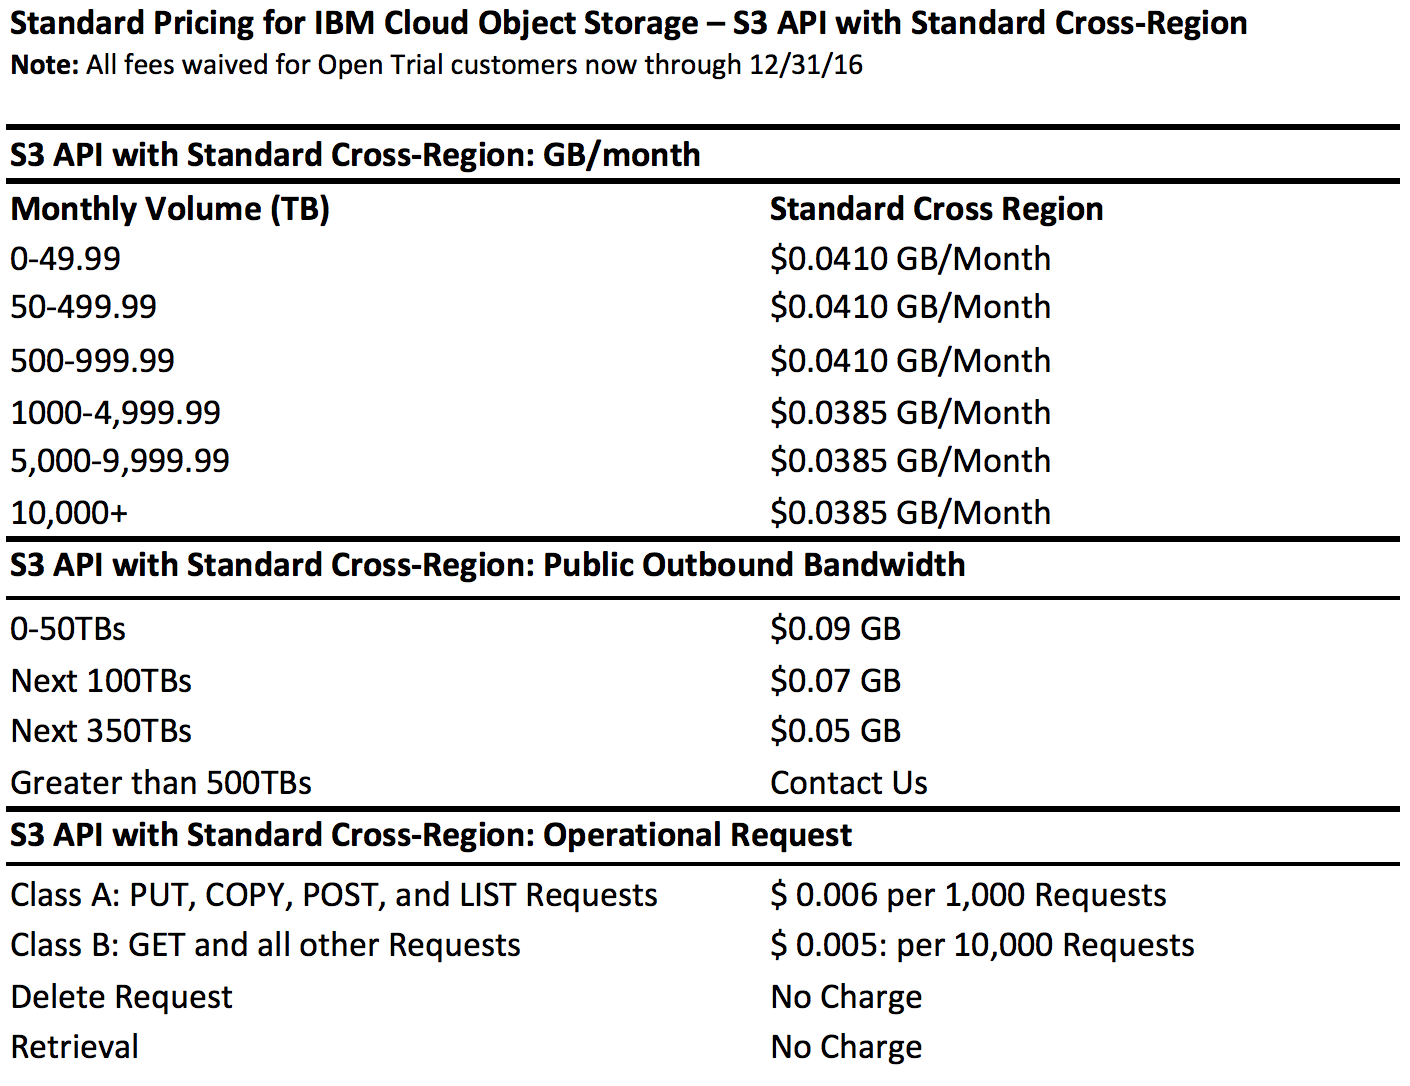 Standard Pricing for IBM Cloud Object Storage – S3 API with Standard Cross-Region